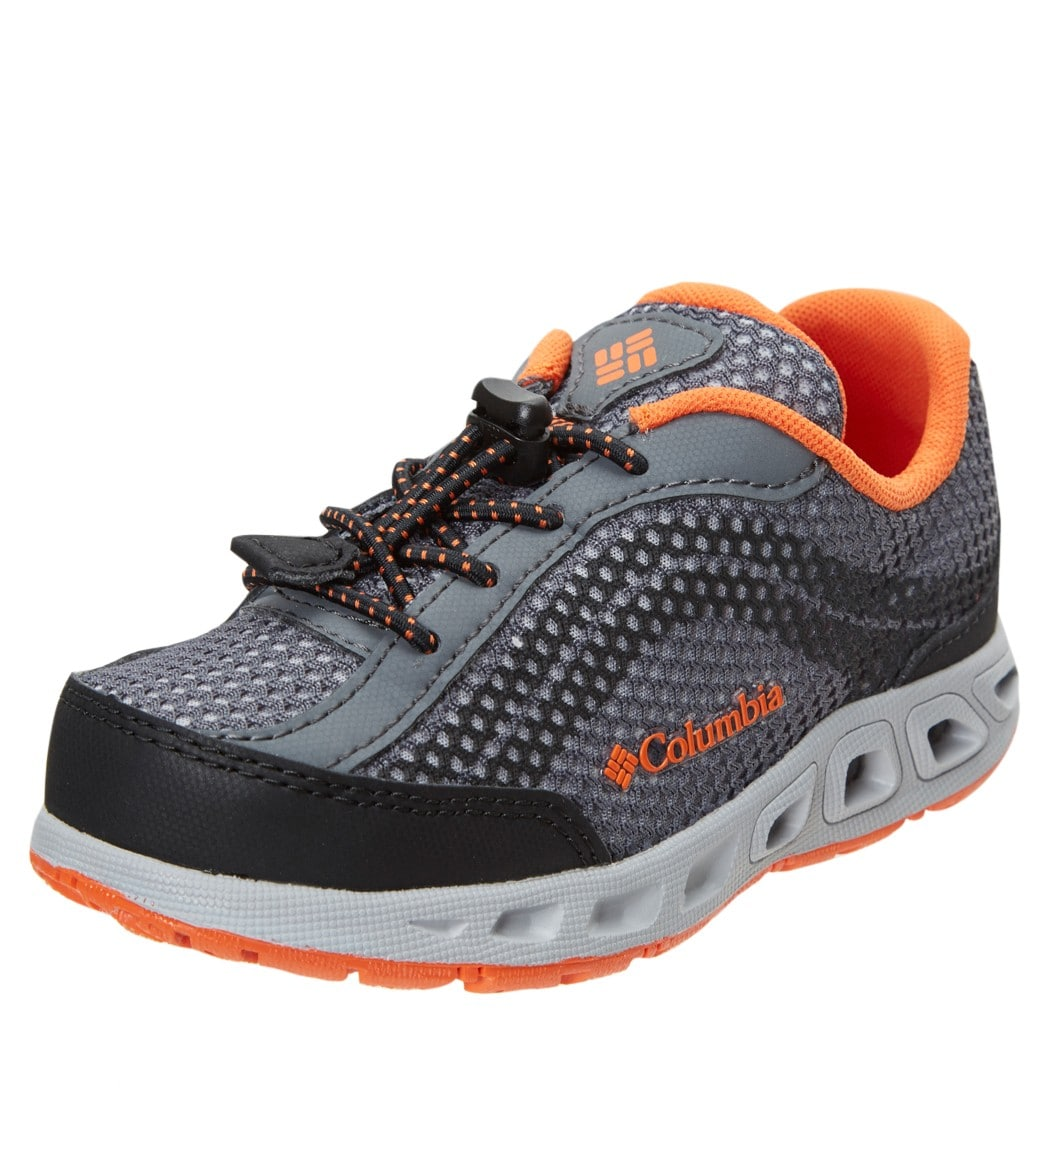 Columbia Kid s Drainmaker IV Water Shoe at SwimOutlet.com - Free Shipping 9bcd62cdfe